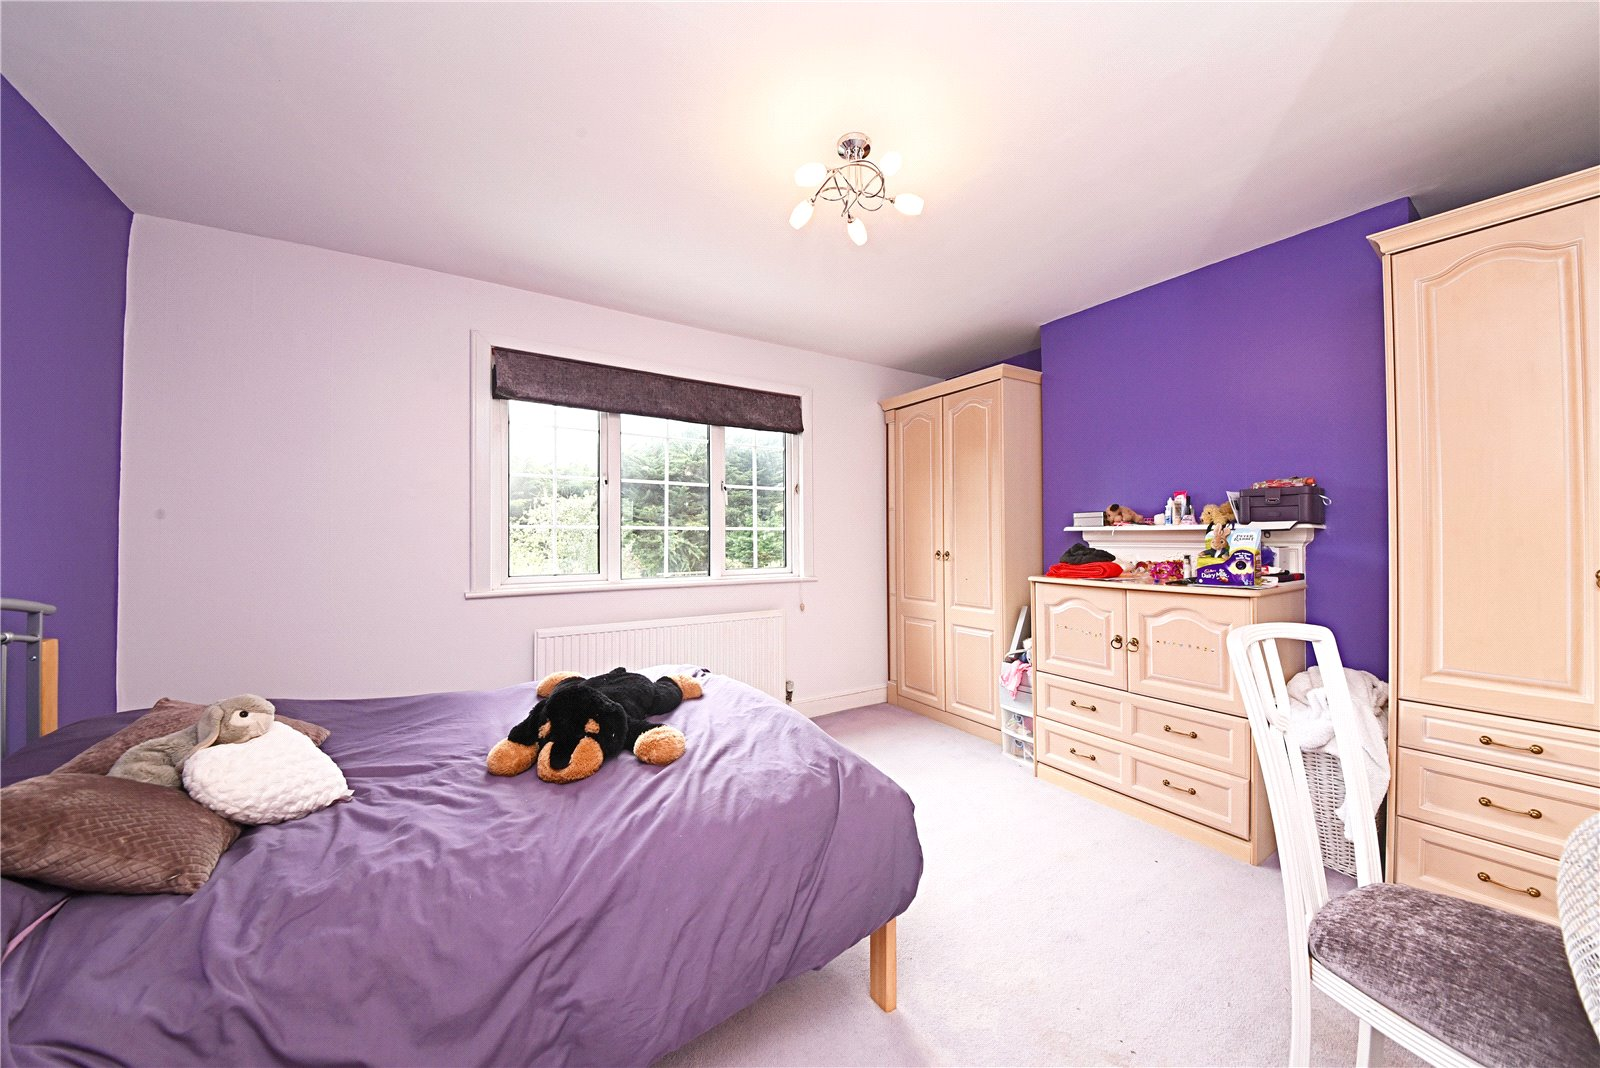 5 bed house for sale in Southgate, N14 4PX  - Property Image 6